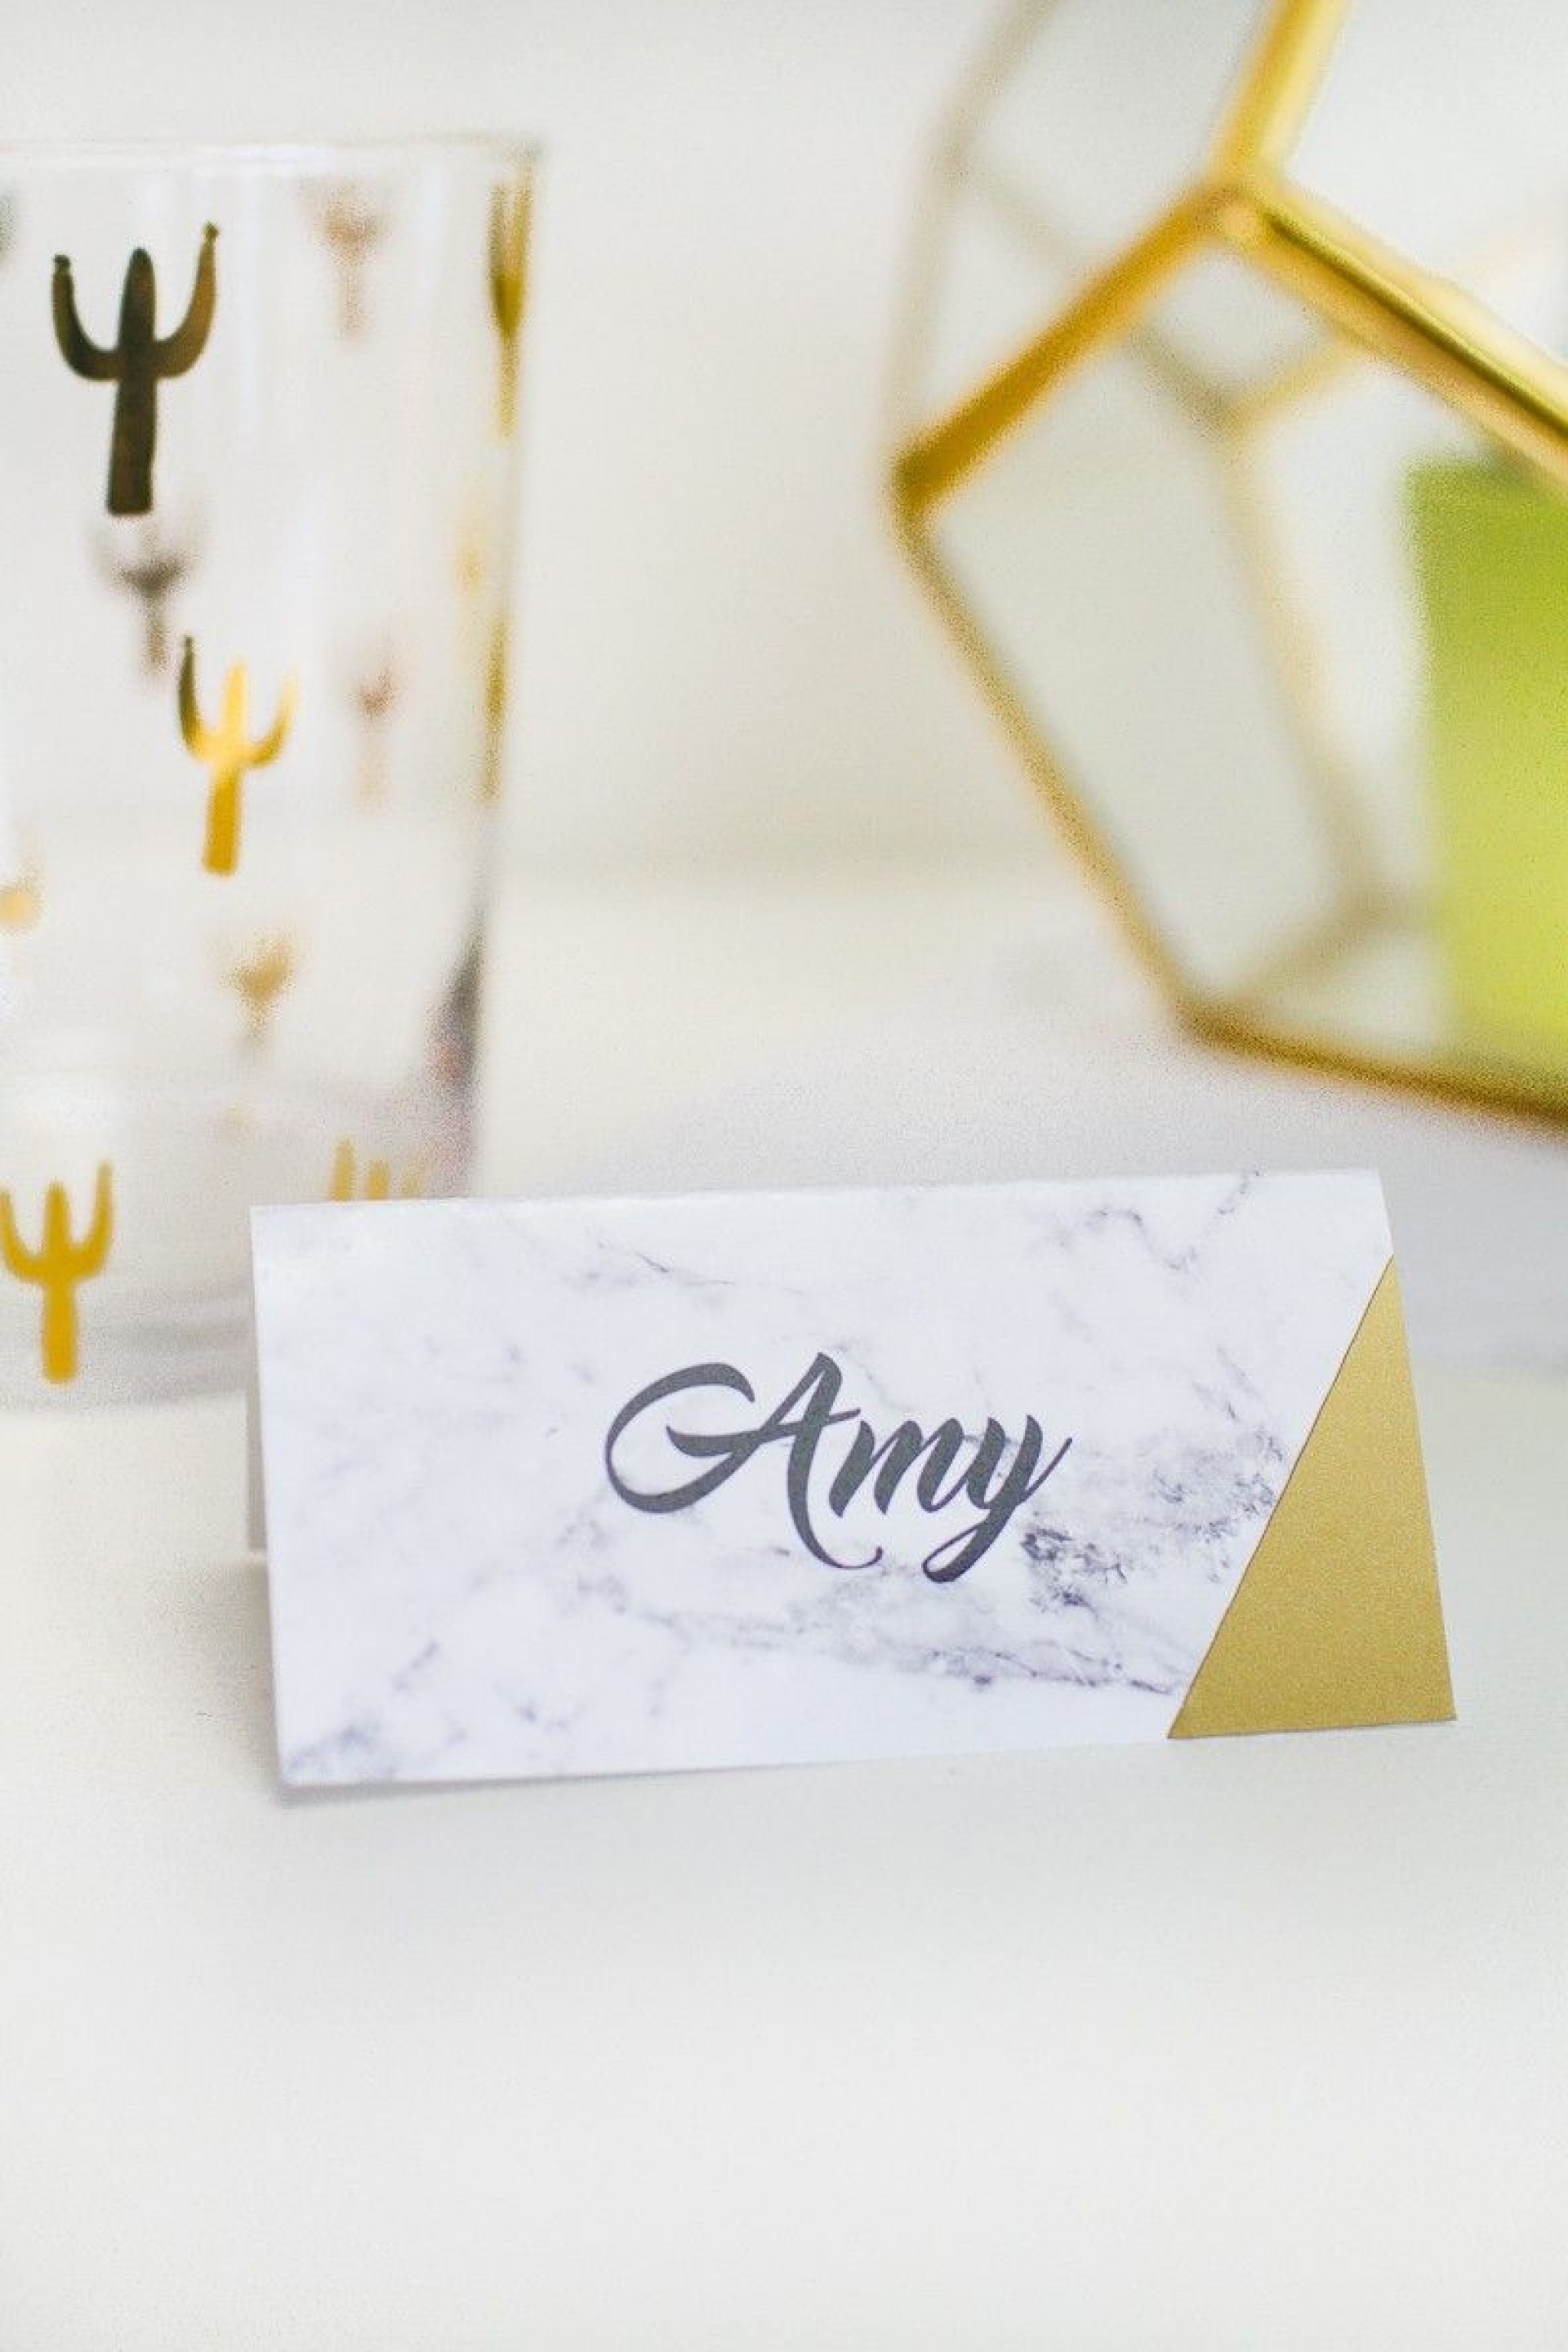 000 Wonderful Name Place Card Template Free Download Image  Psd Vector1920